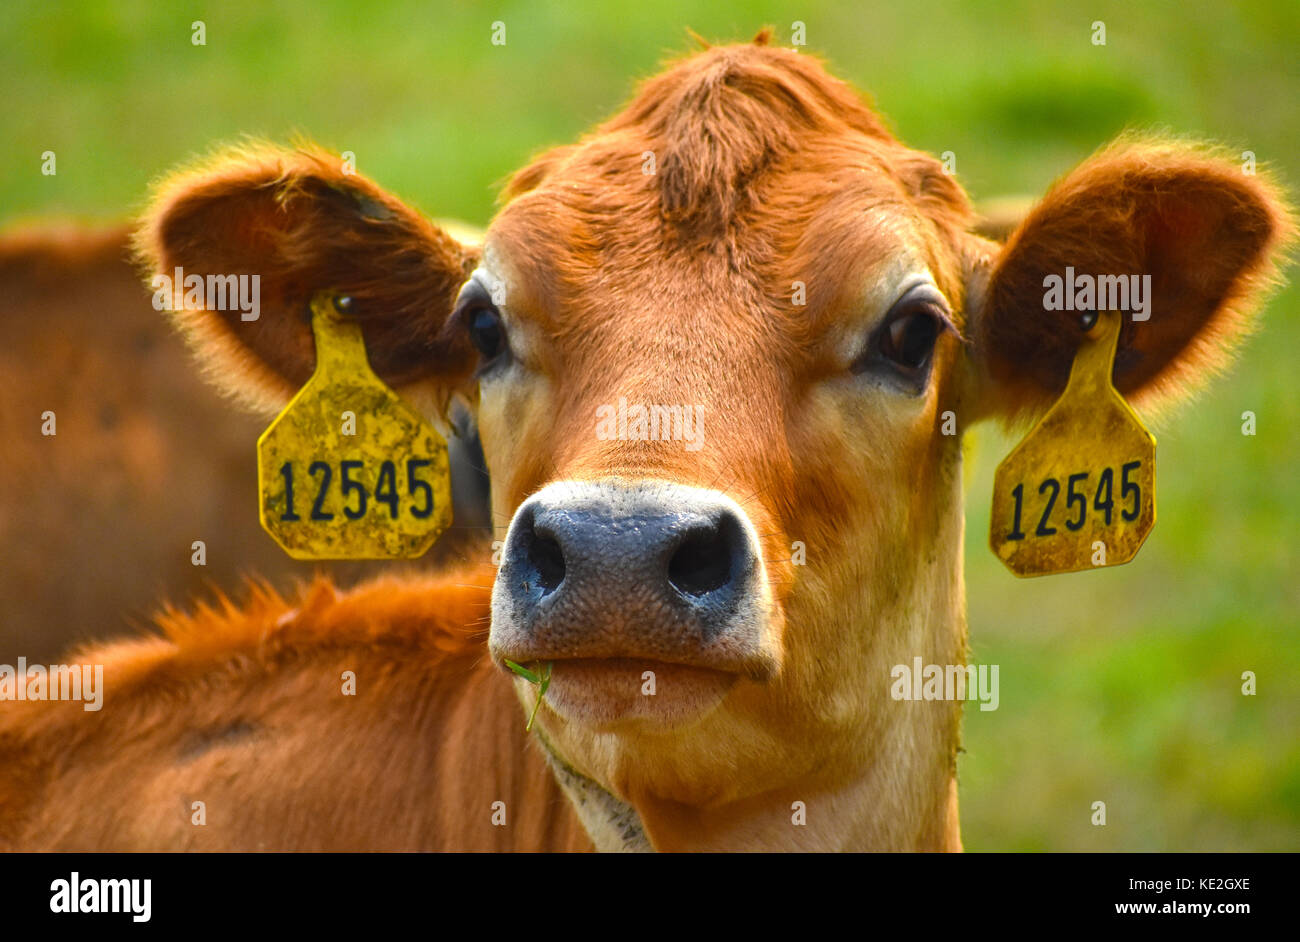 Cow headshot with identification tags in ears - Stock Image